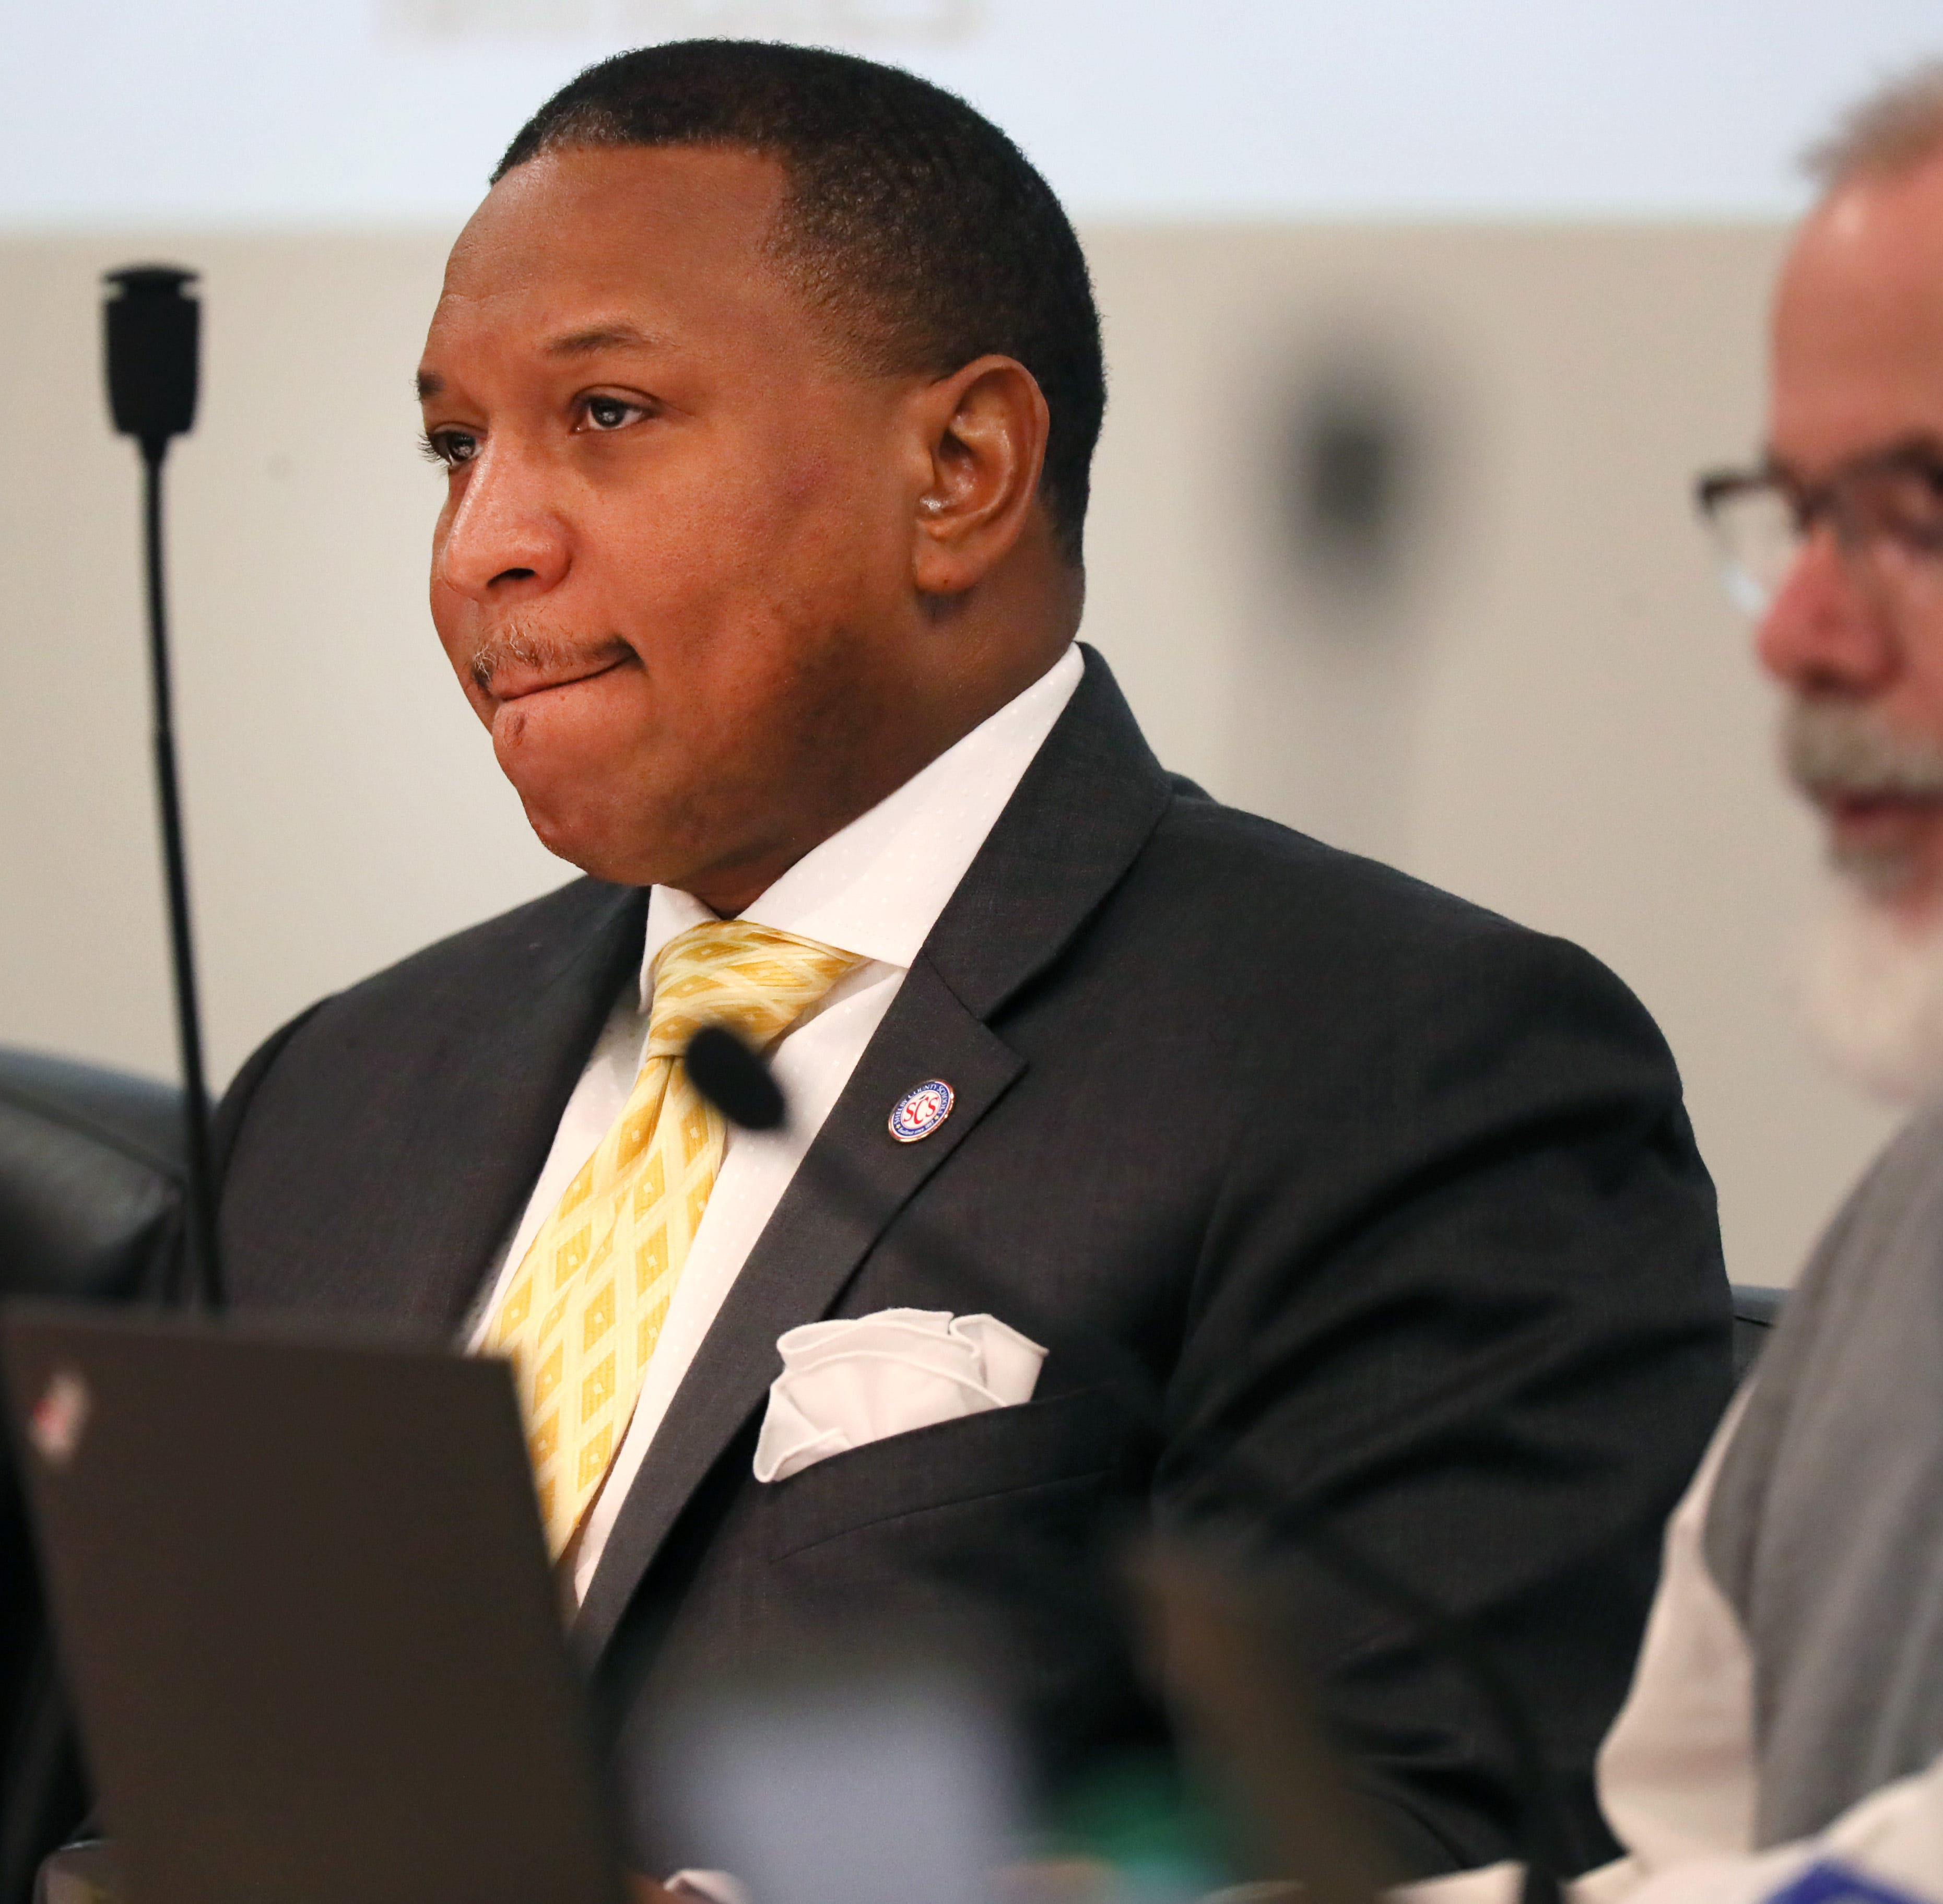 SCS Superintendent Joris Ray investigated amid sexual harassment claims, findings released